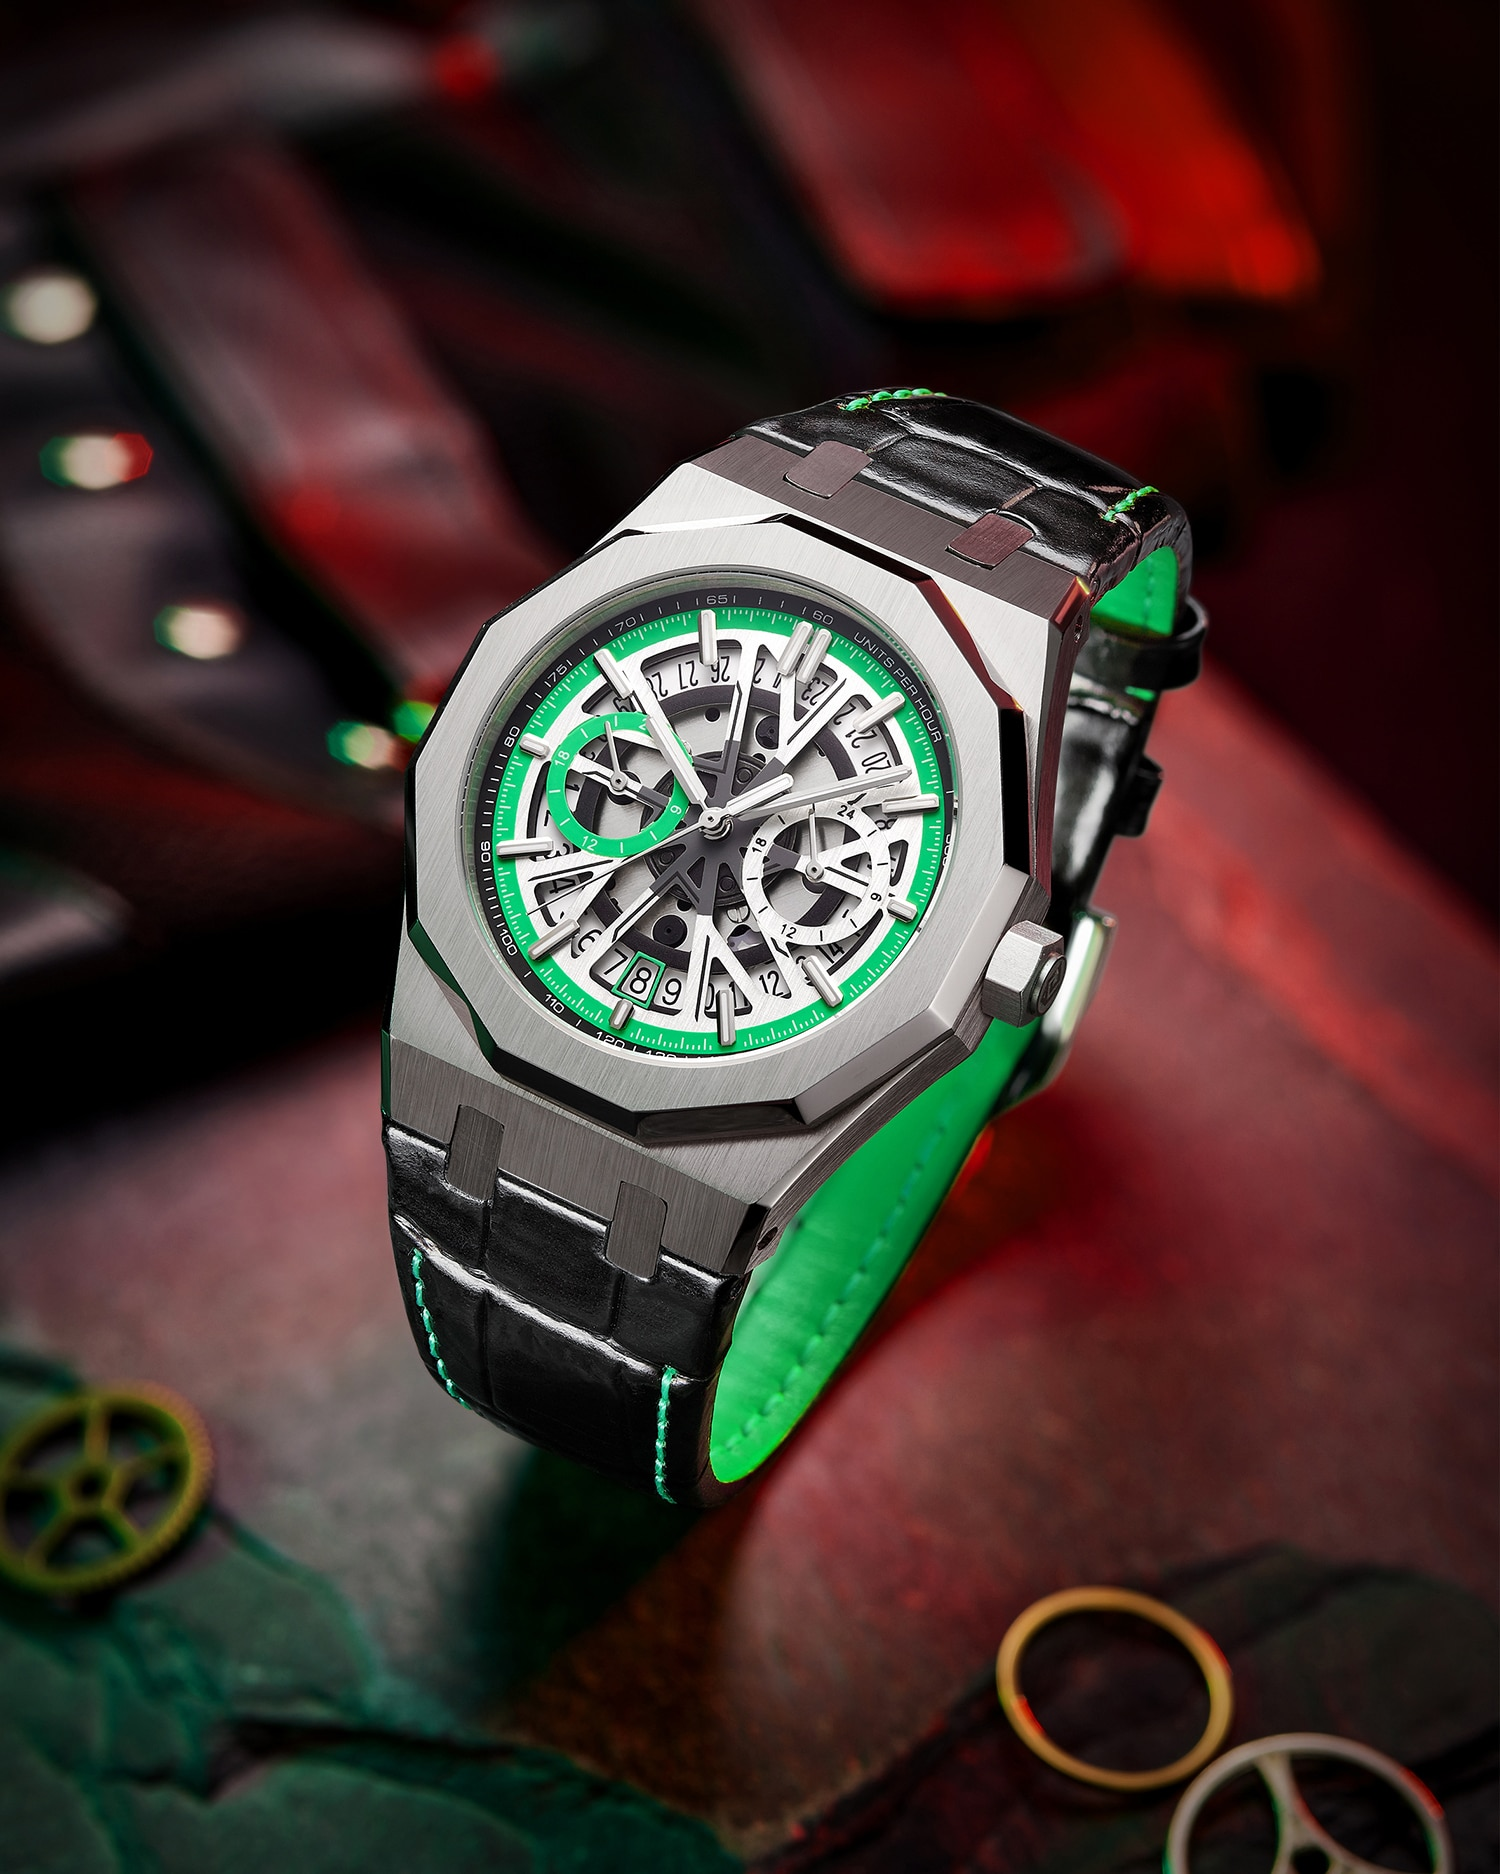 Ha354db48125948a3a808527a23be56e82 - DIDUN NewTop Brand Luxury Watches Men Steel Quartz Watch Clock Color Dial Mens Watches Leather Wristwatch JAPAN VD31 Movement